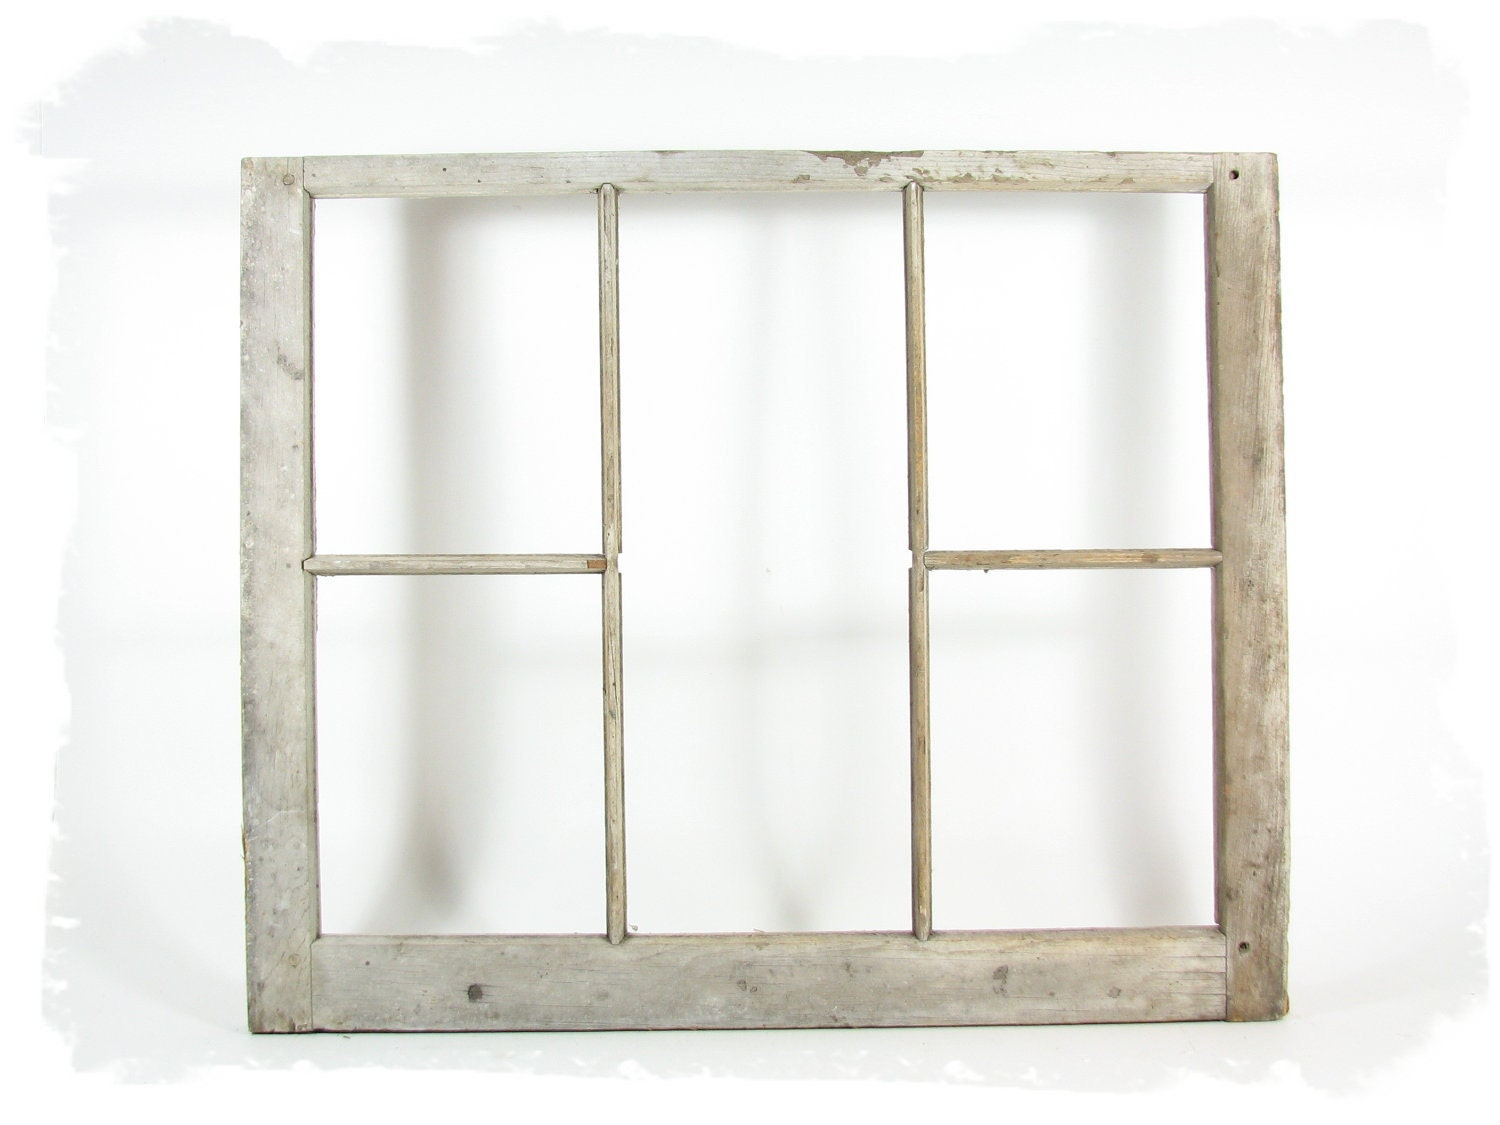 Vintage Wood Window Frame 5 Pane without Glass by ...